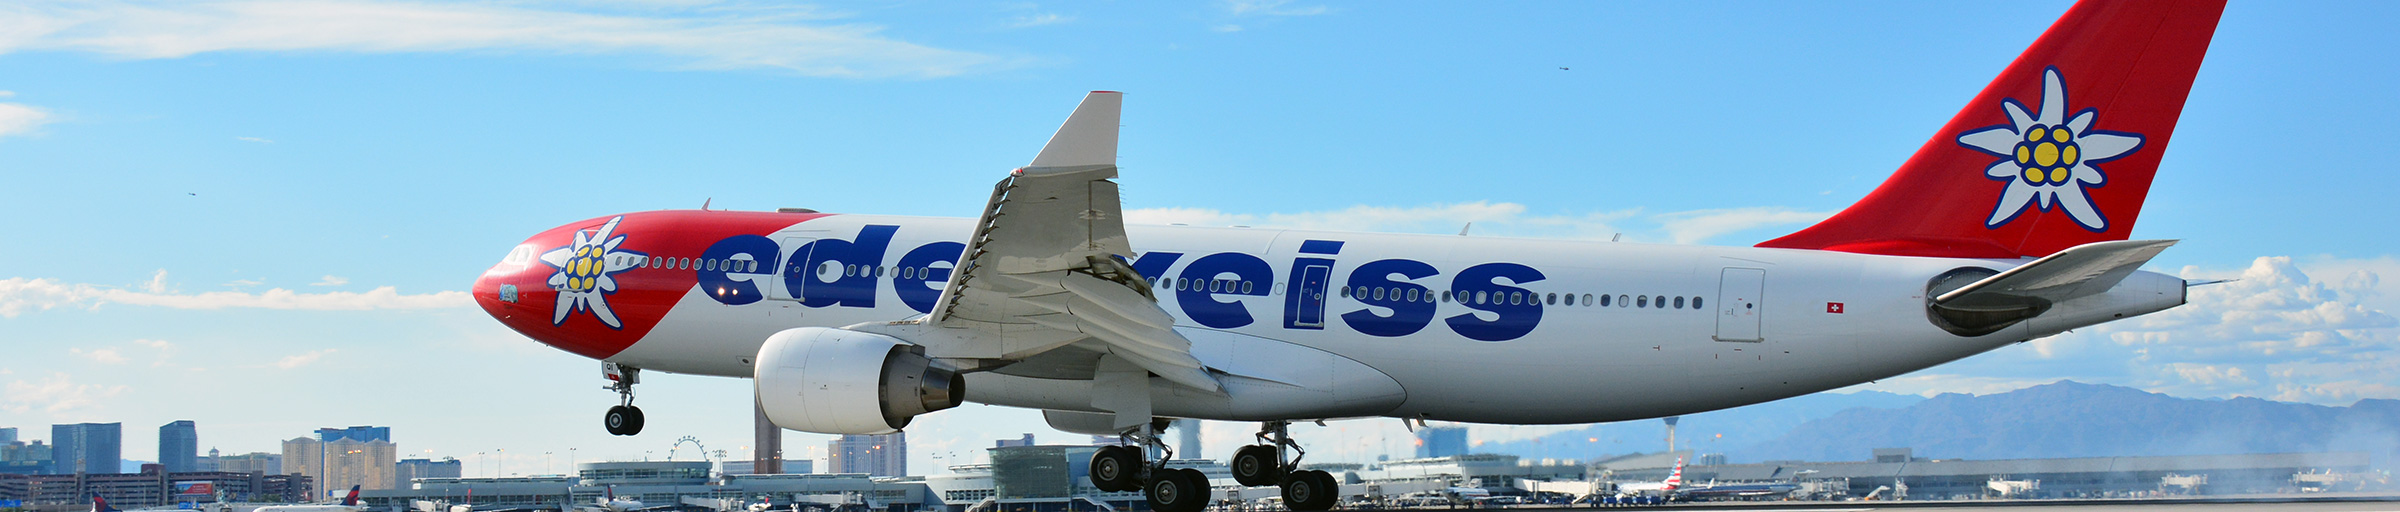 Edelweiss Air at McCarran